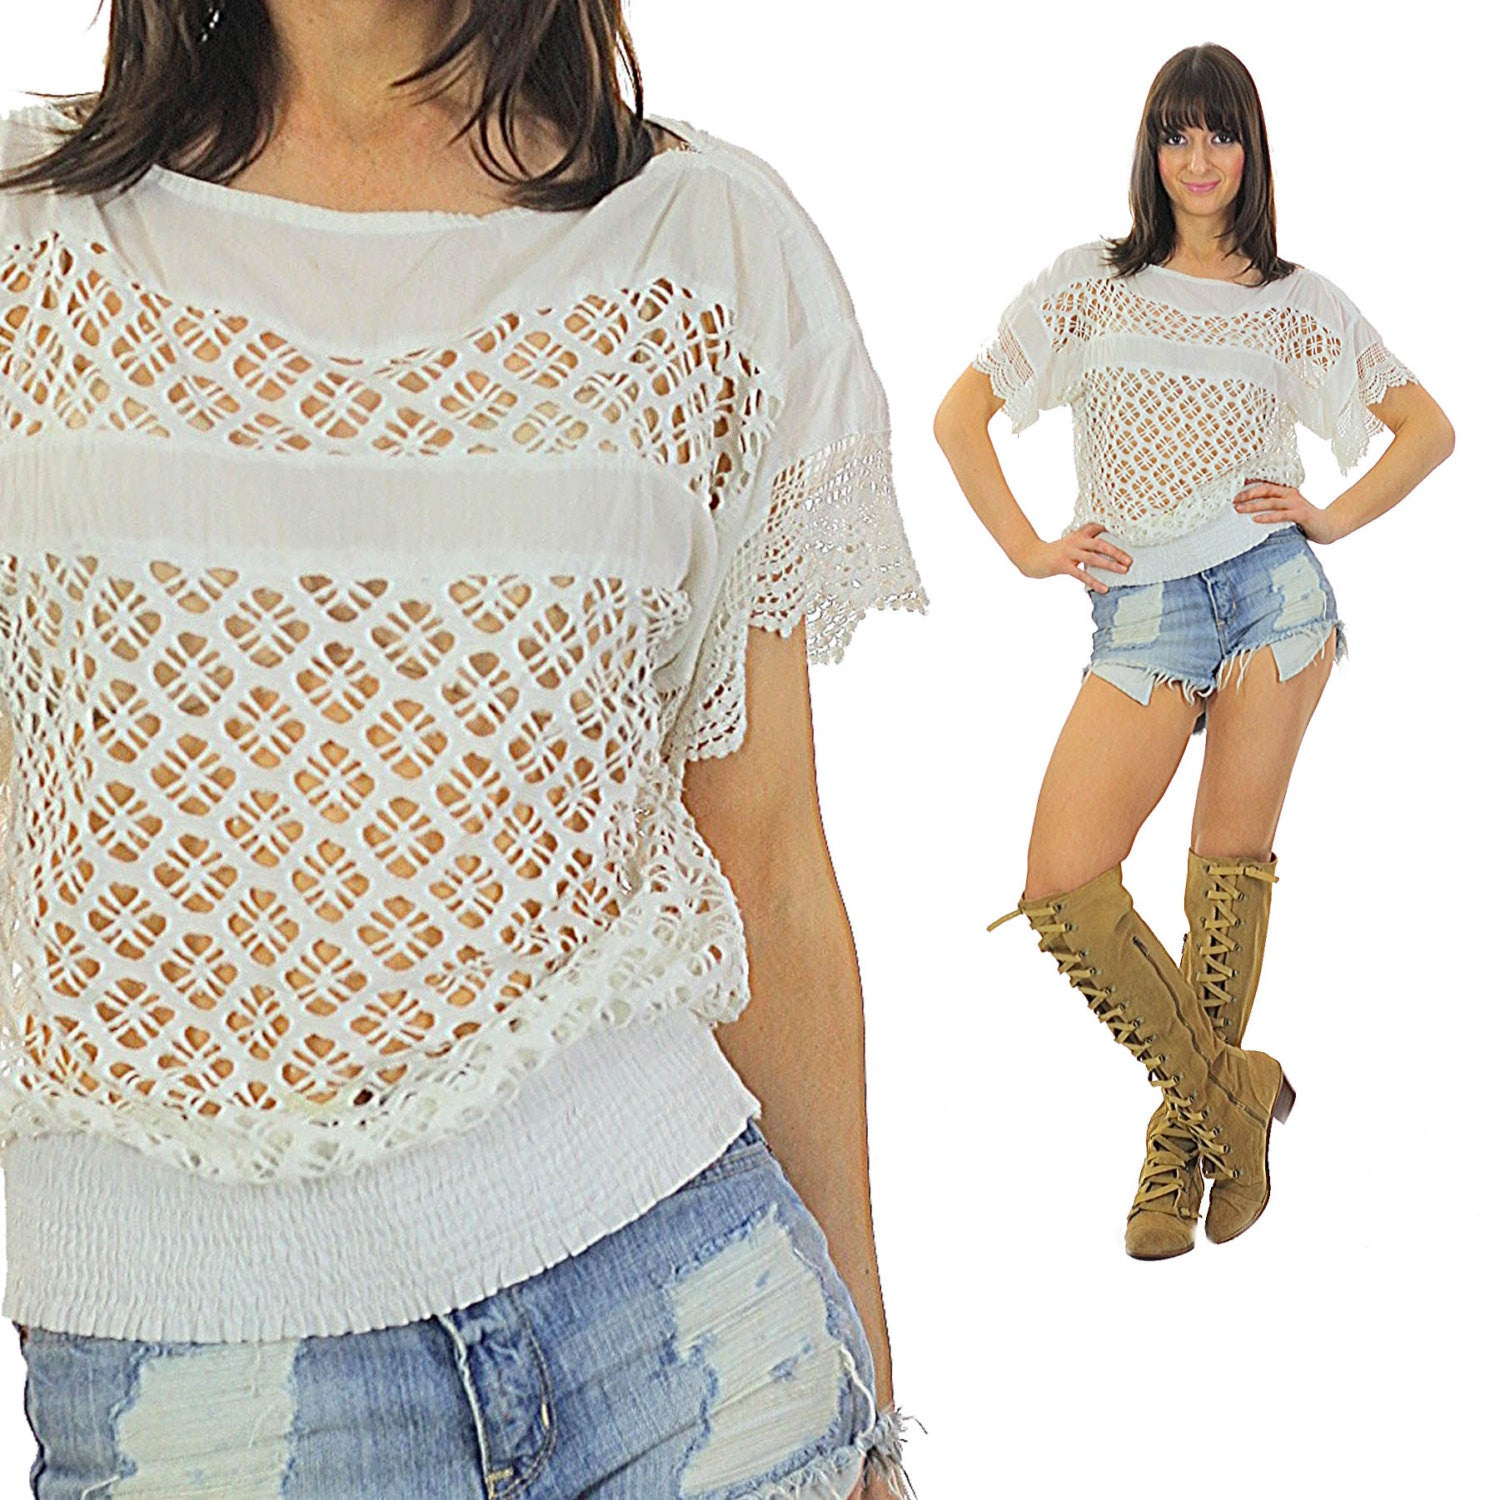 5df153a0bfad7 Vintage 70s White lace top lace shirt sheer top Floral top Bohemian shirt  Hippie shirt Gypsy